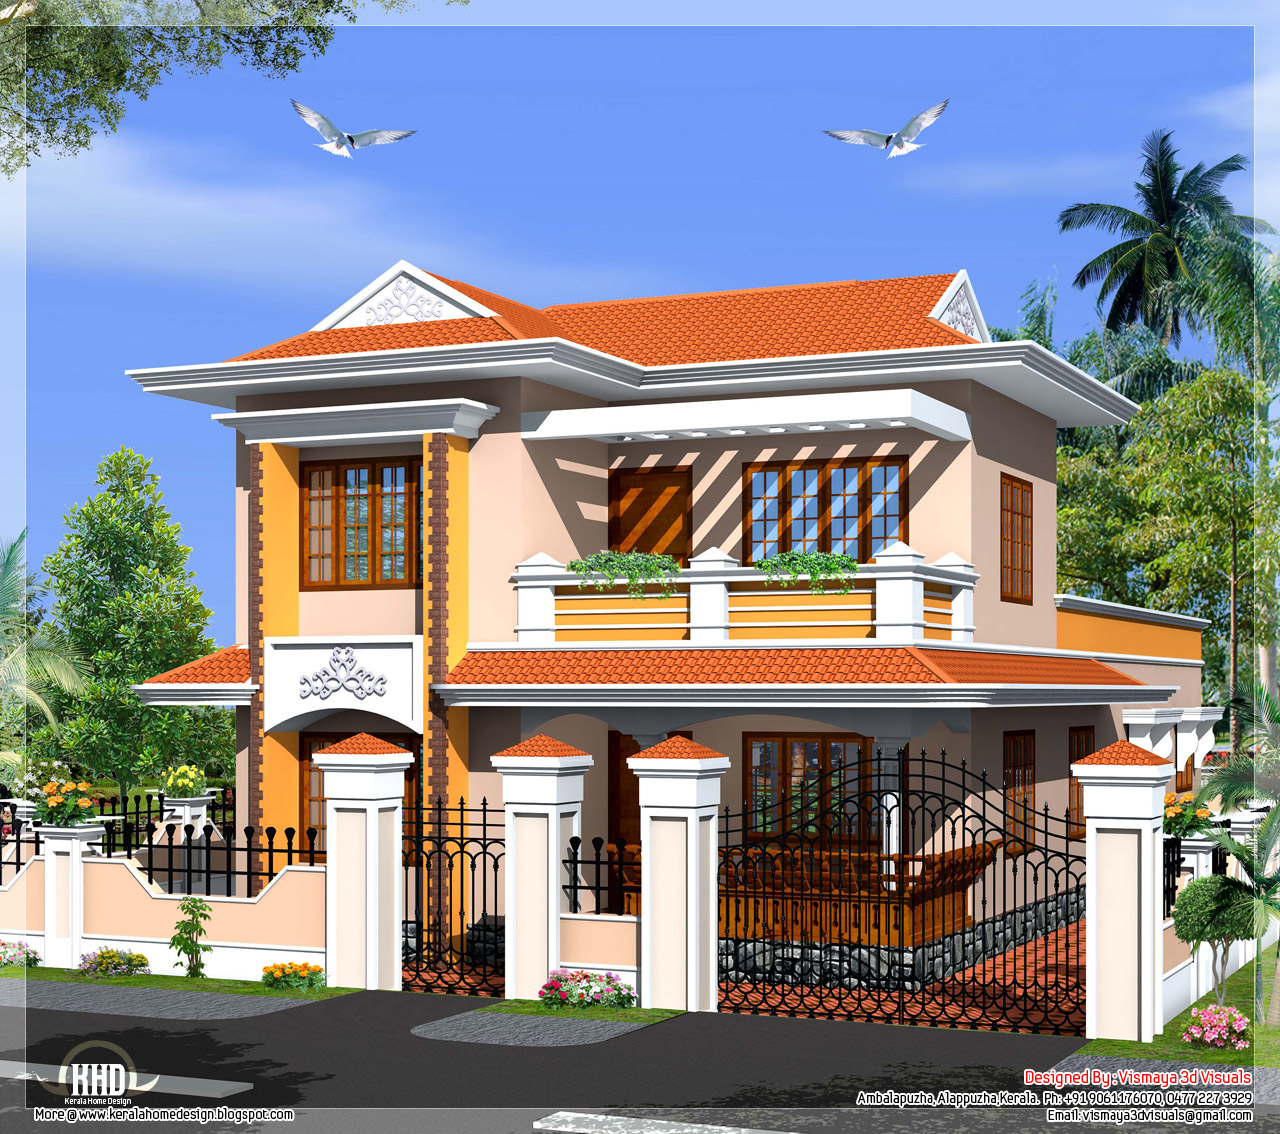 Kerala Model Villa In 2110 In Square Feet